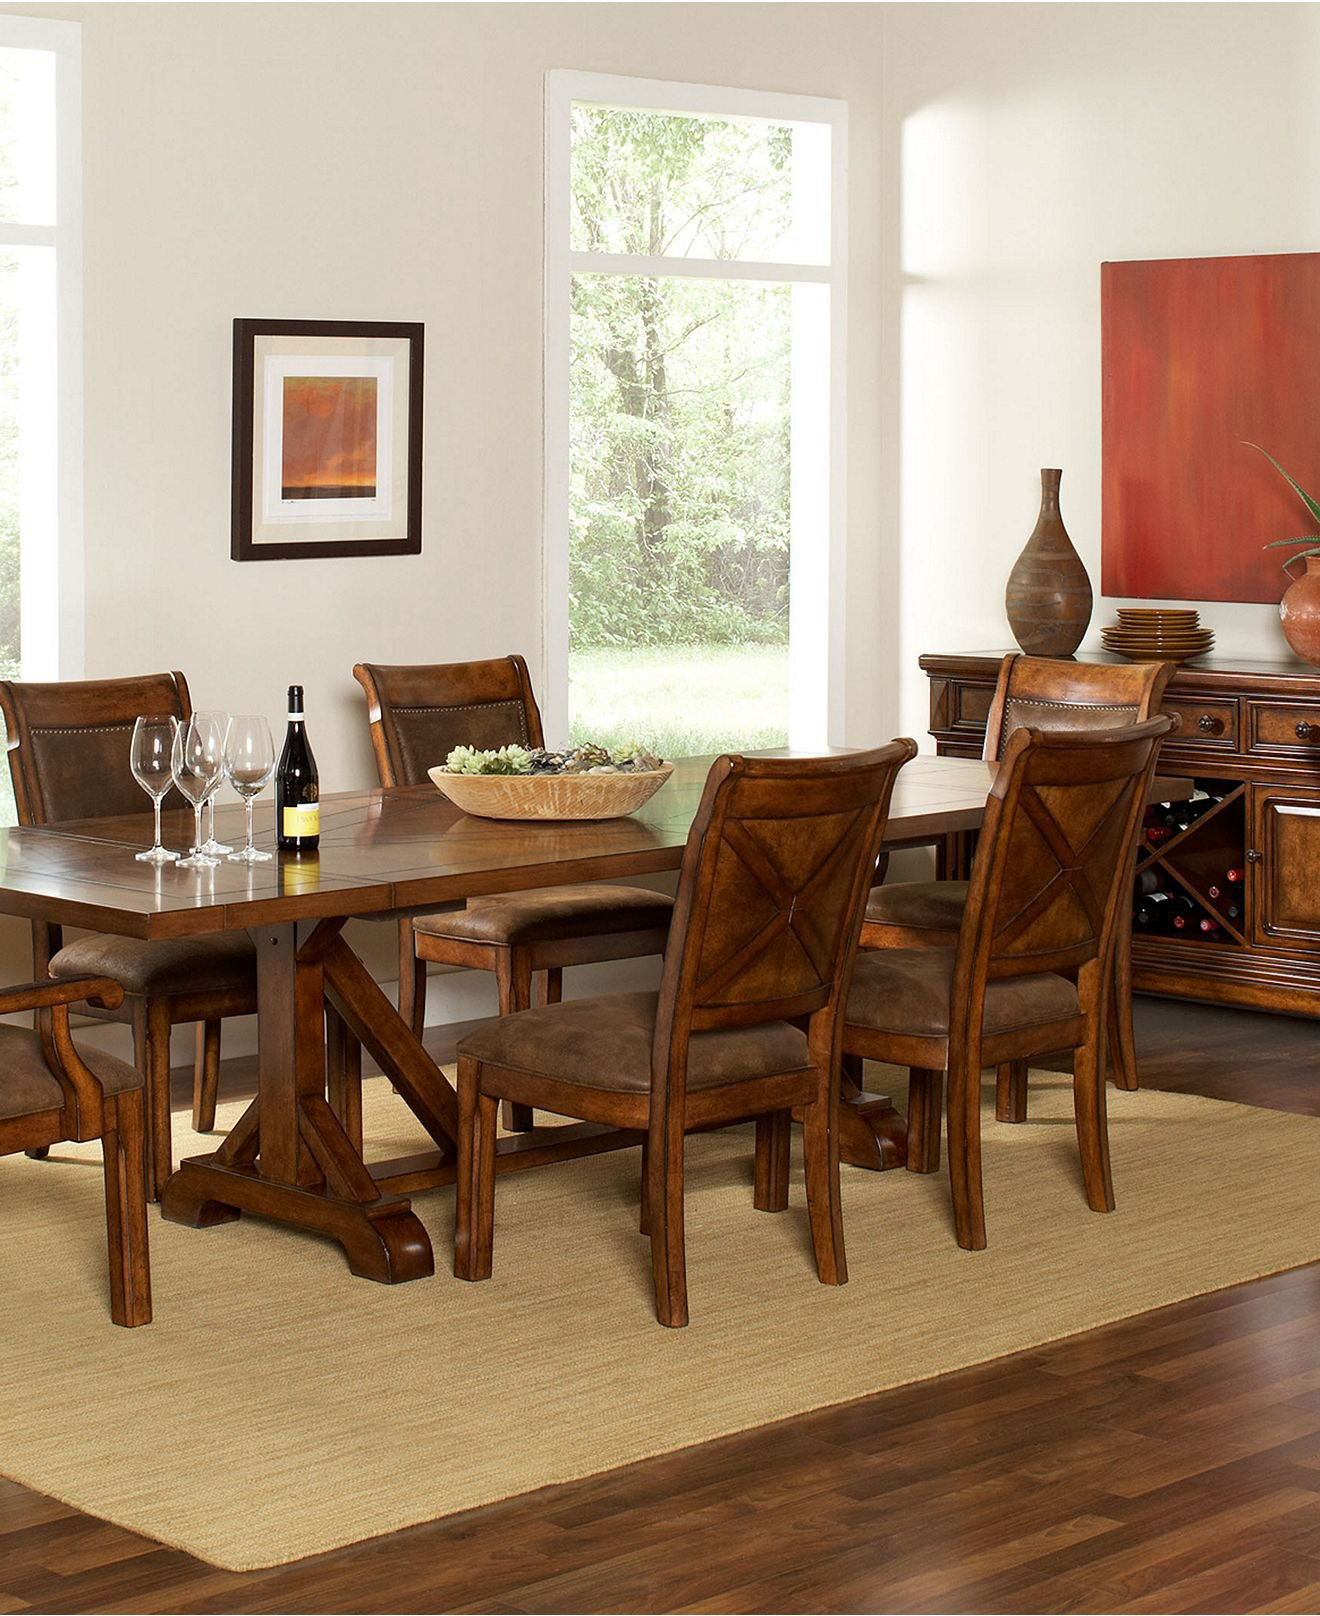 Mandara Dining Room Furniture Collection from Macys The  : original from wanelo.com size 1320 x 1616 jpeg 325kB